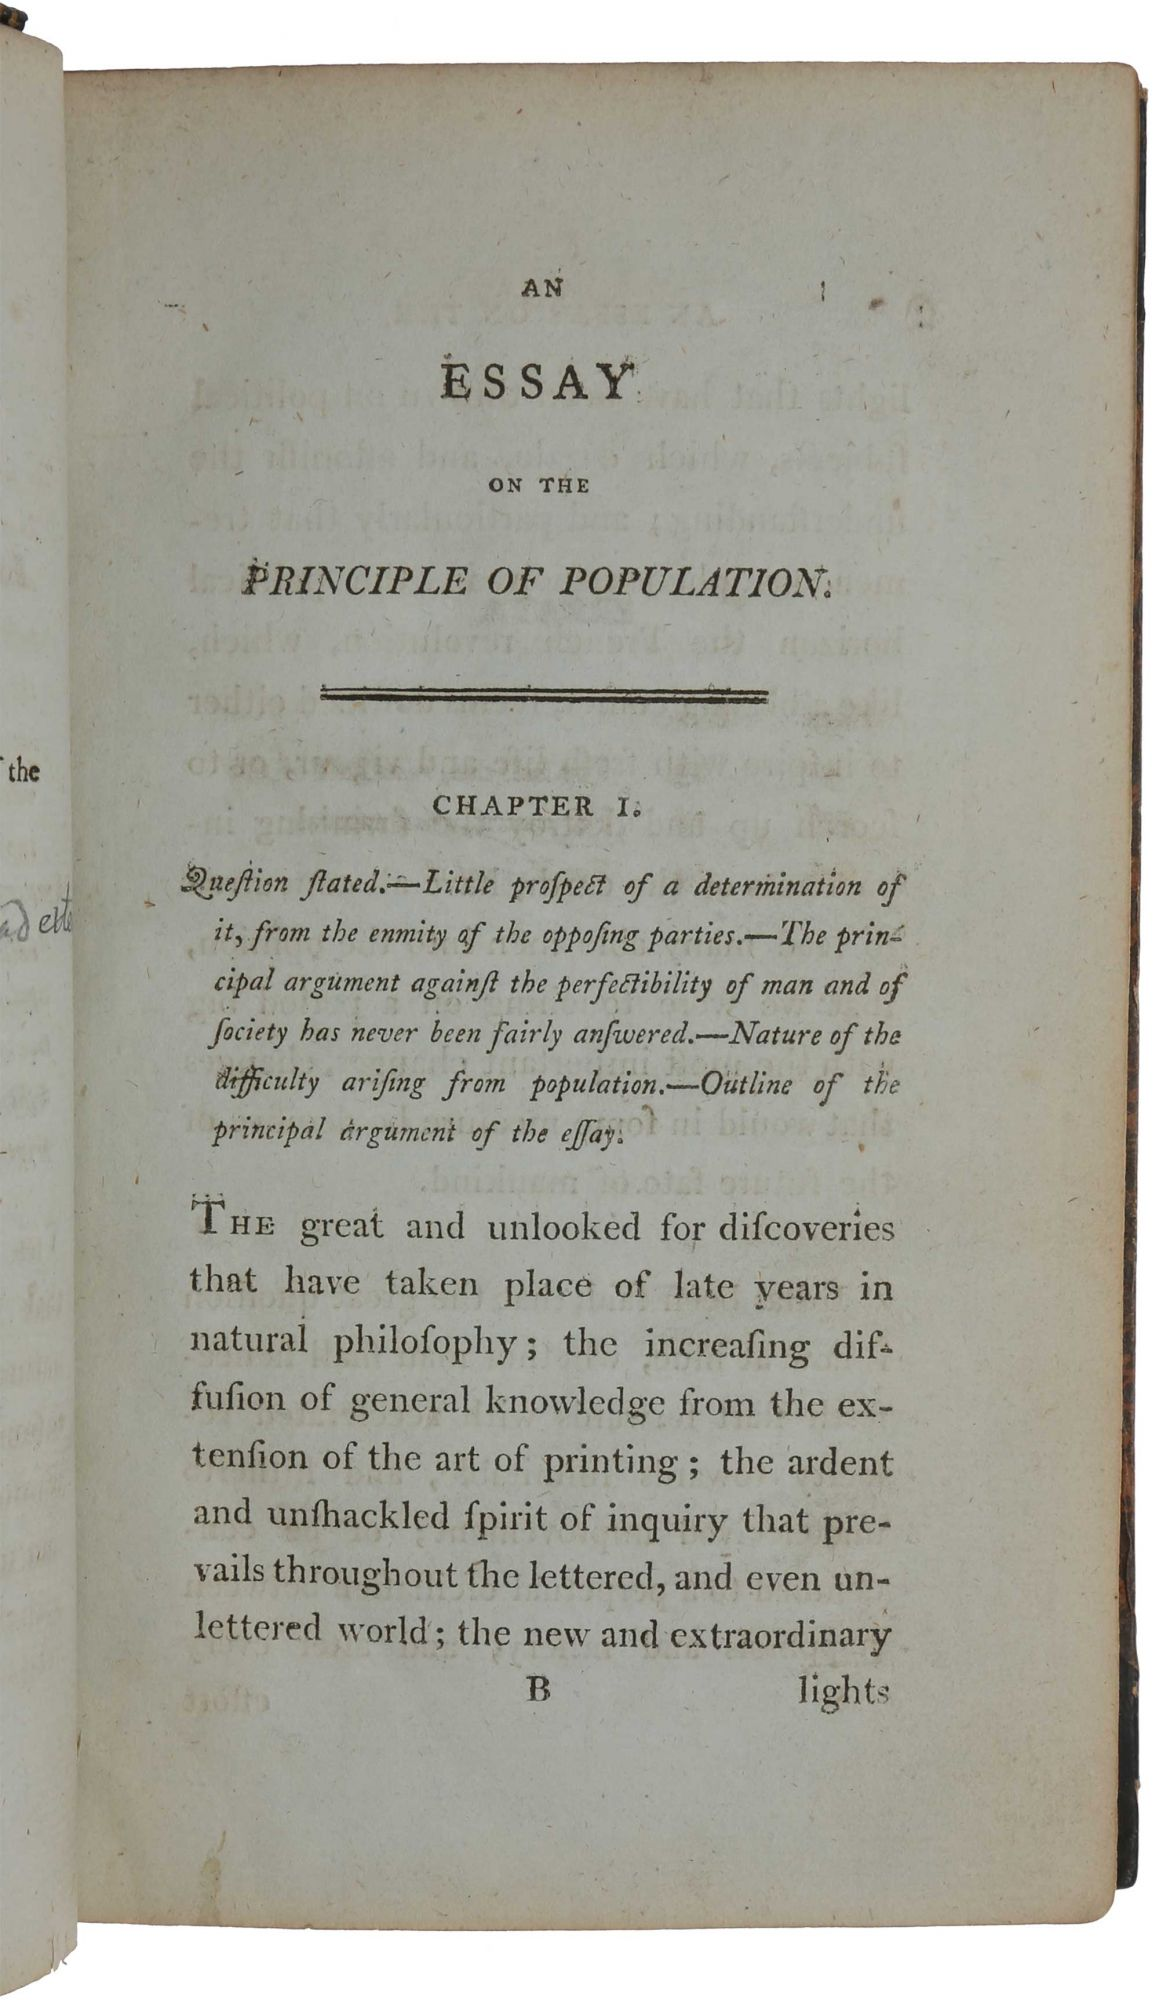 thomas malthus an essay on the principle of population analysis thomas malthus an essay on the principle of population analysis